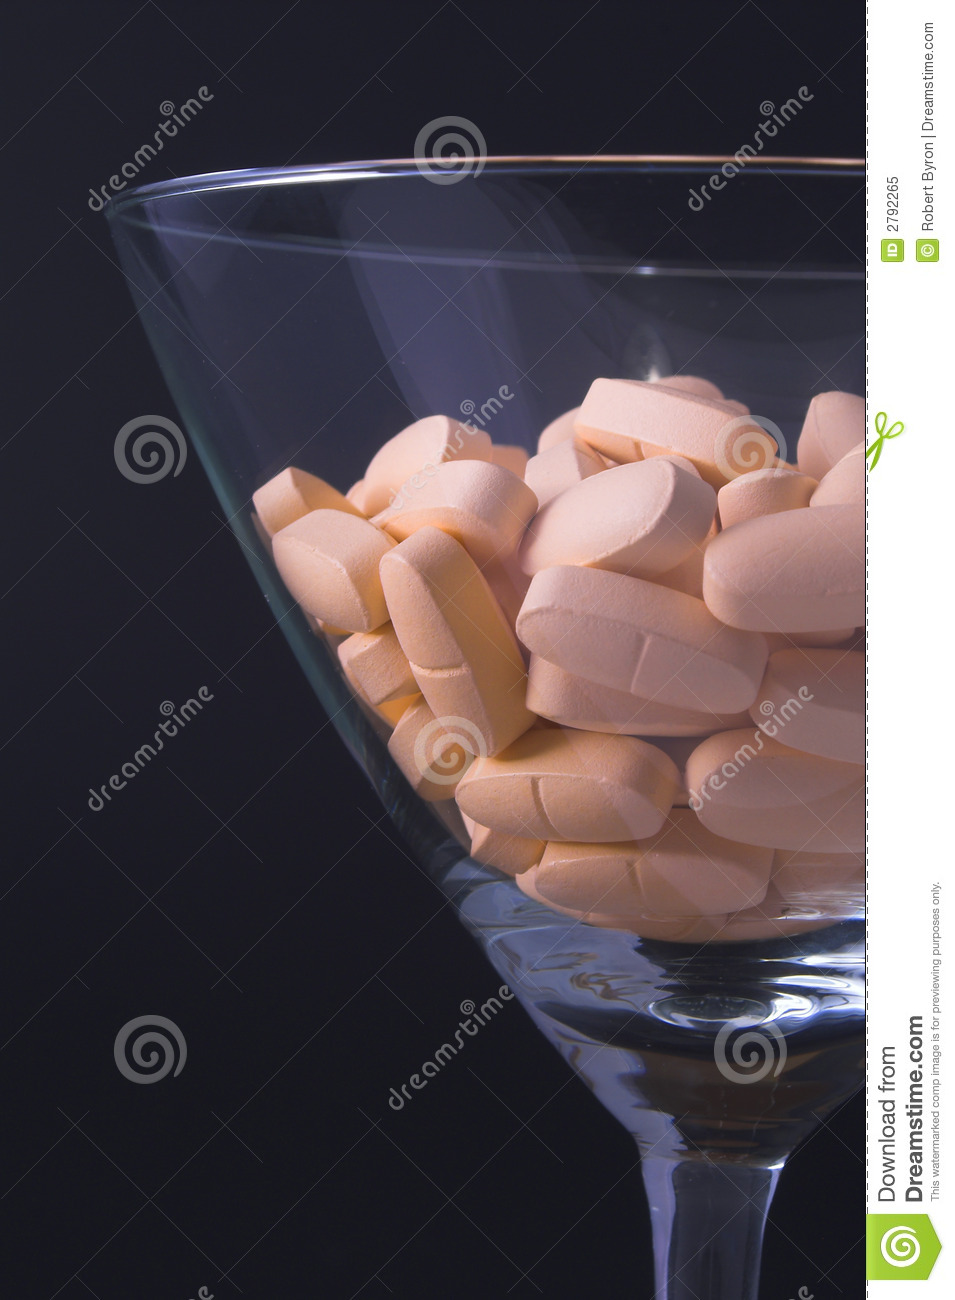 Pills or drugs in glass royalty free stock photo image for Drugs in space